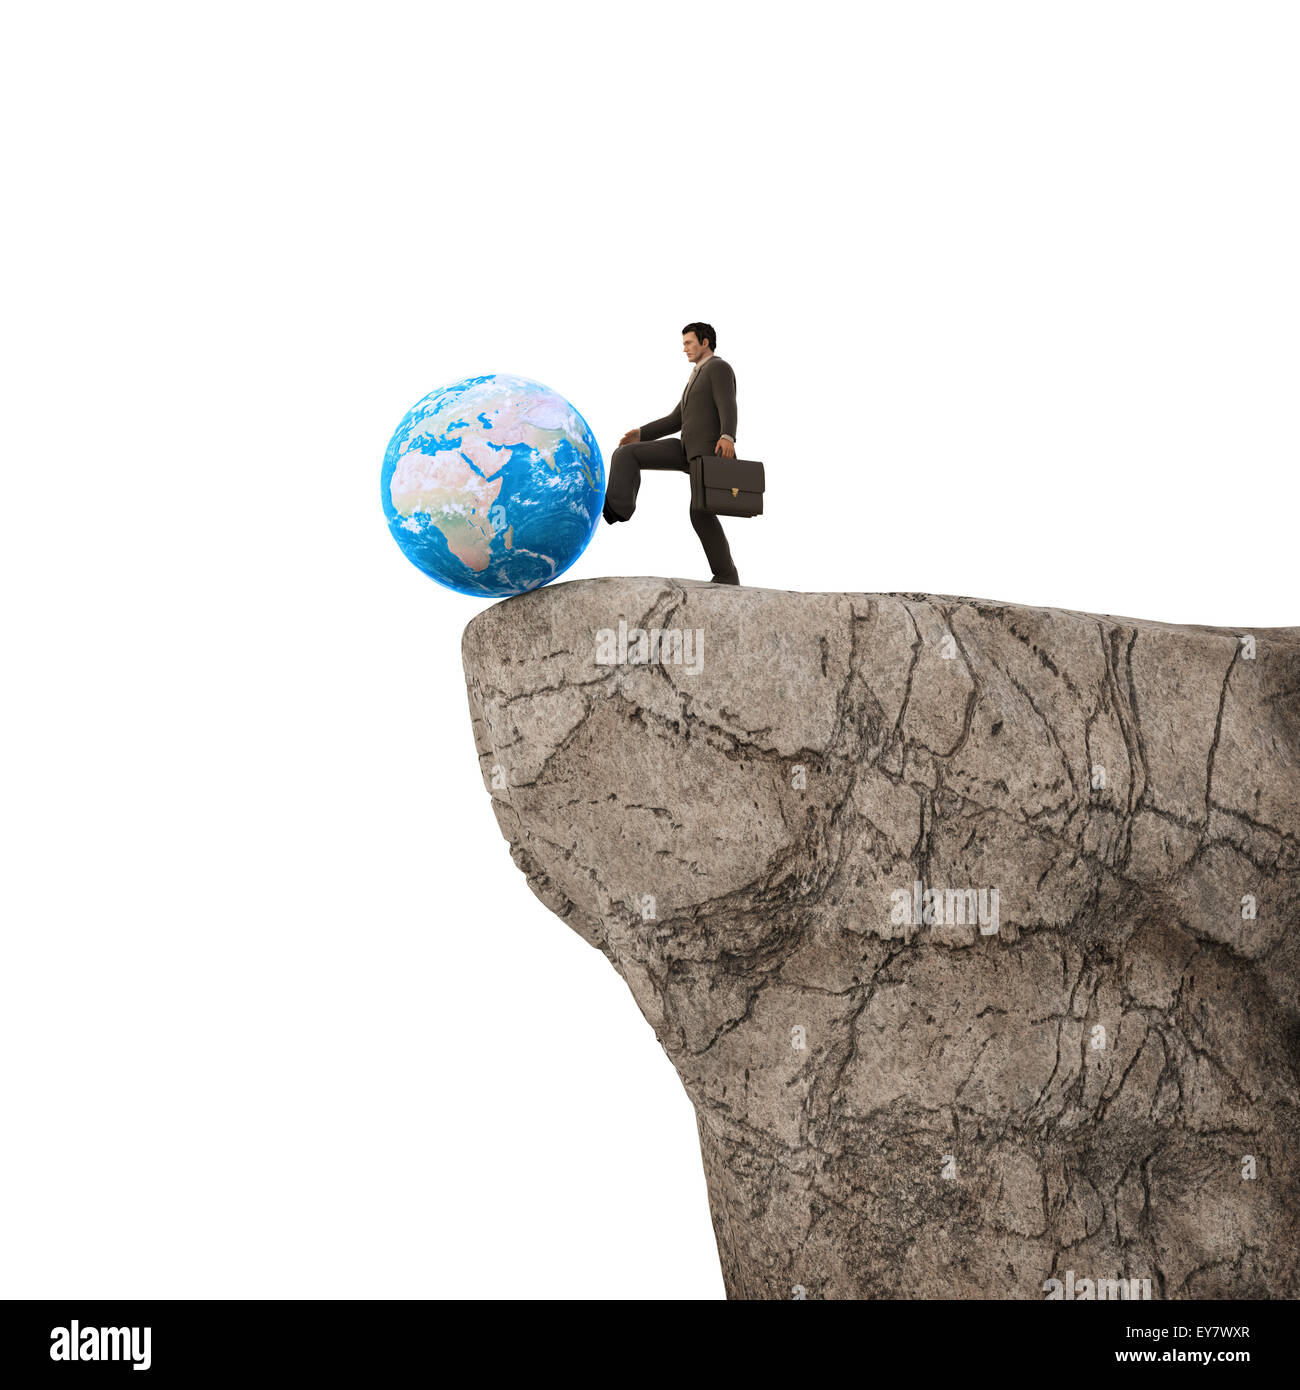 Man pushing Earth of a cliff - Stock Image